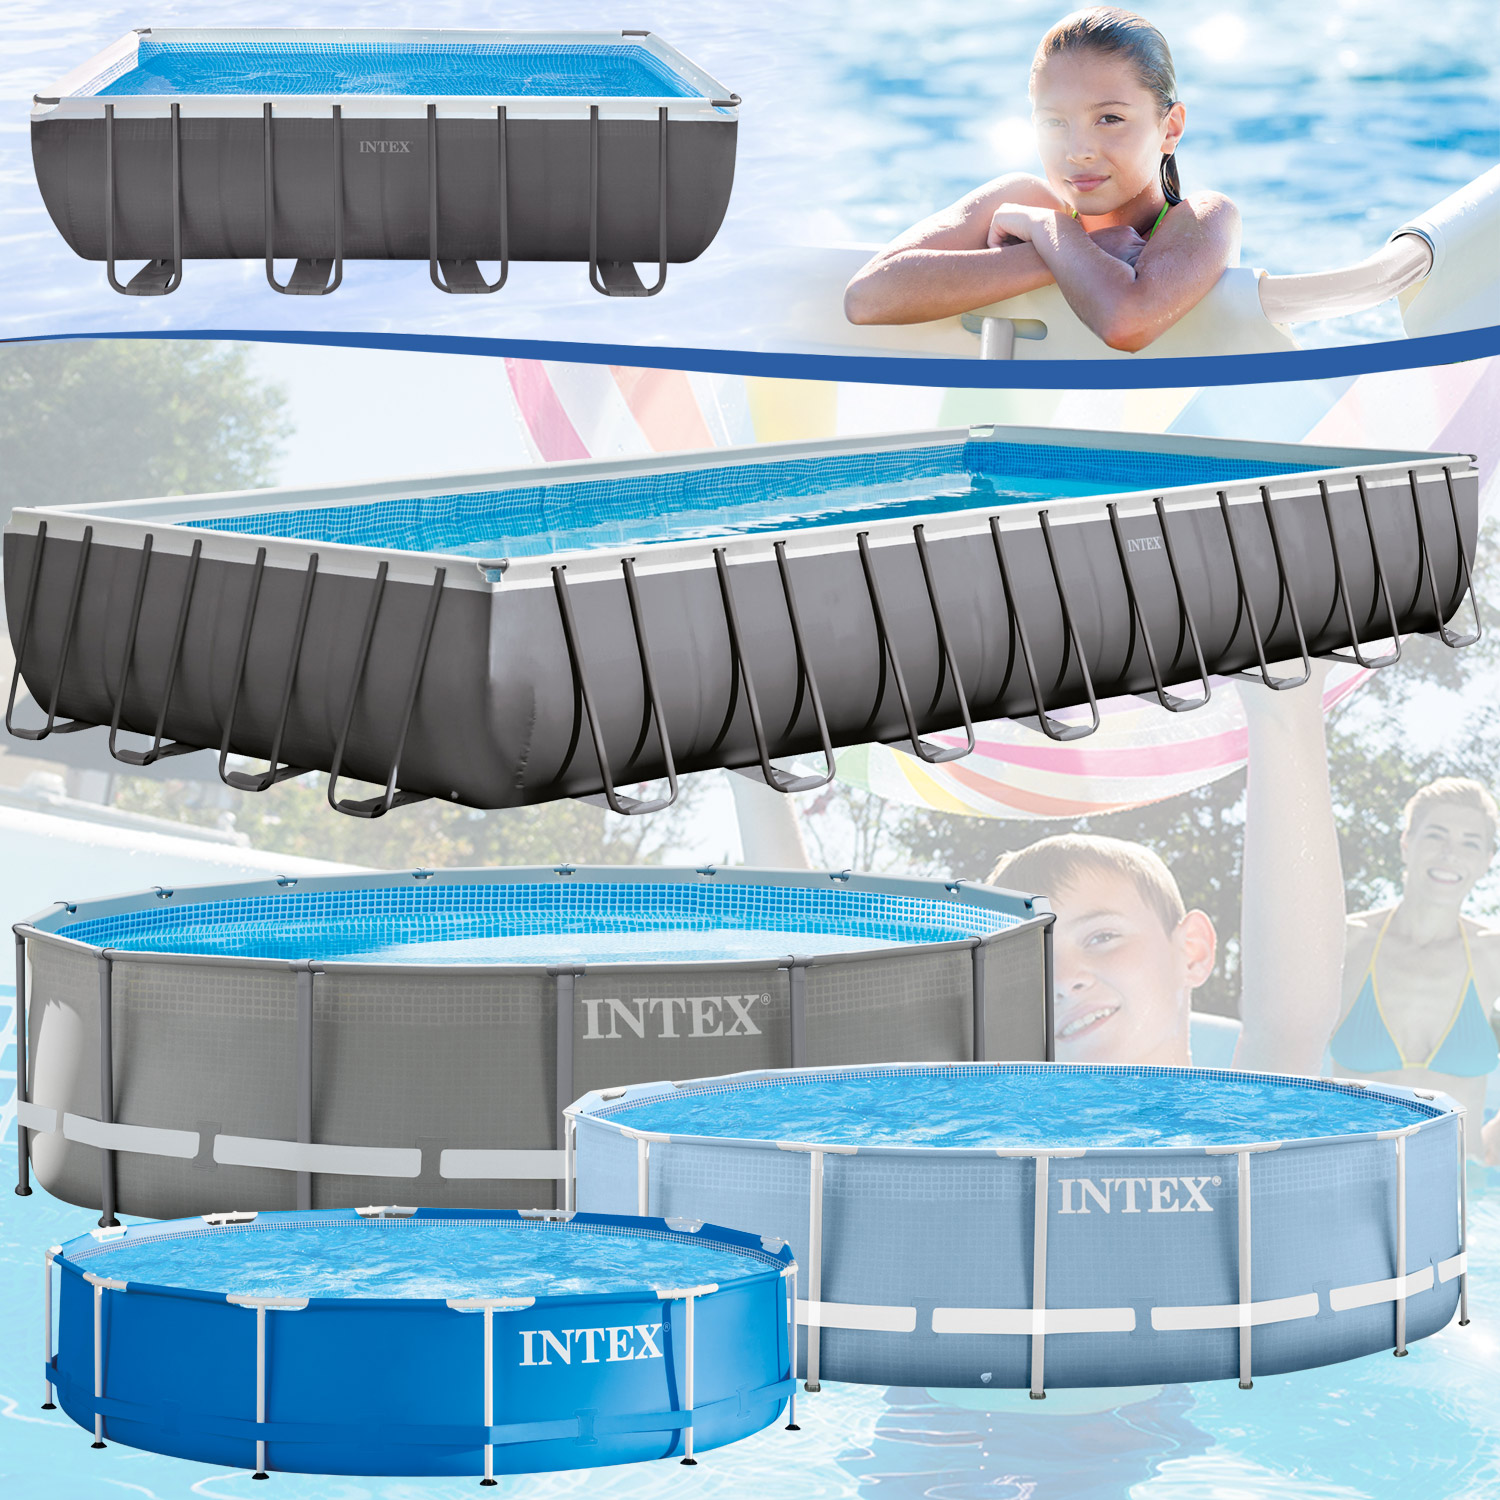 intex frame stahlrohrbecken swimming pool schwimmbad schwimmbecken planschbecken. Black Bedroom Furniture Sets. Home Design Ideas